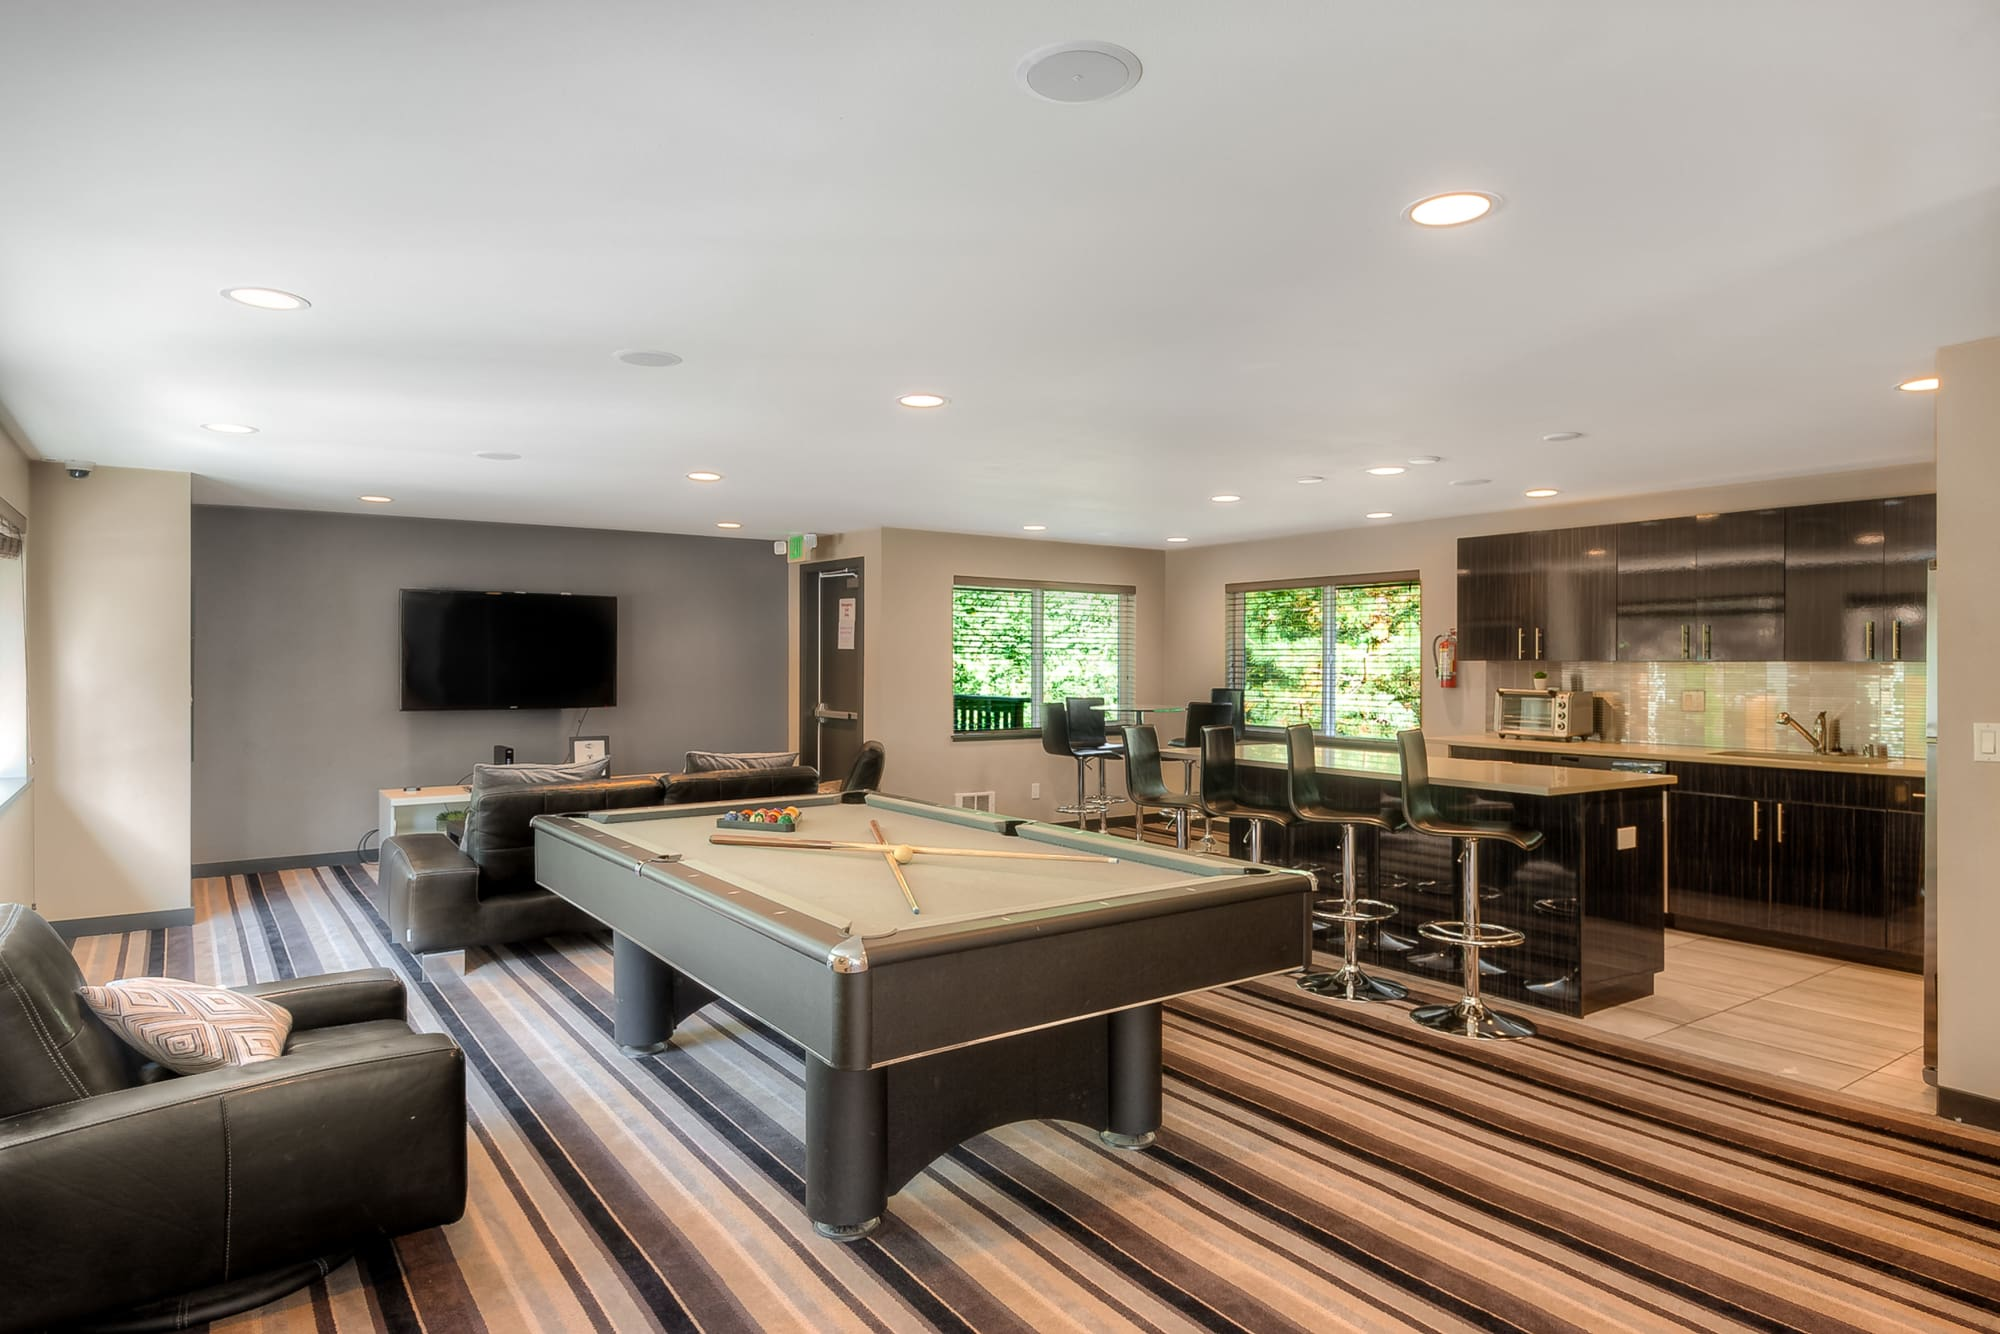 Game room lounge, pool table at Karbon Apartments